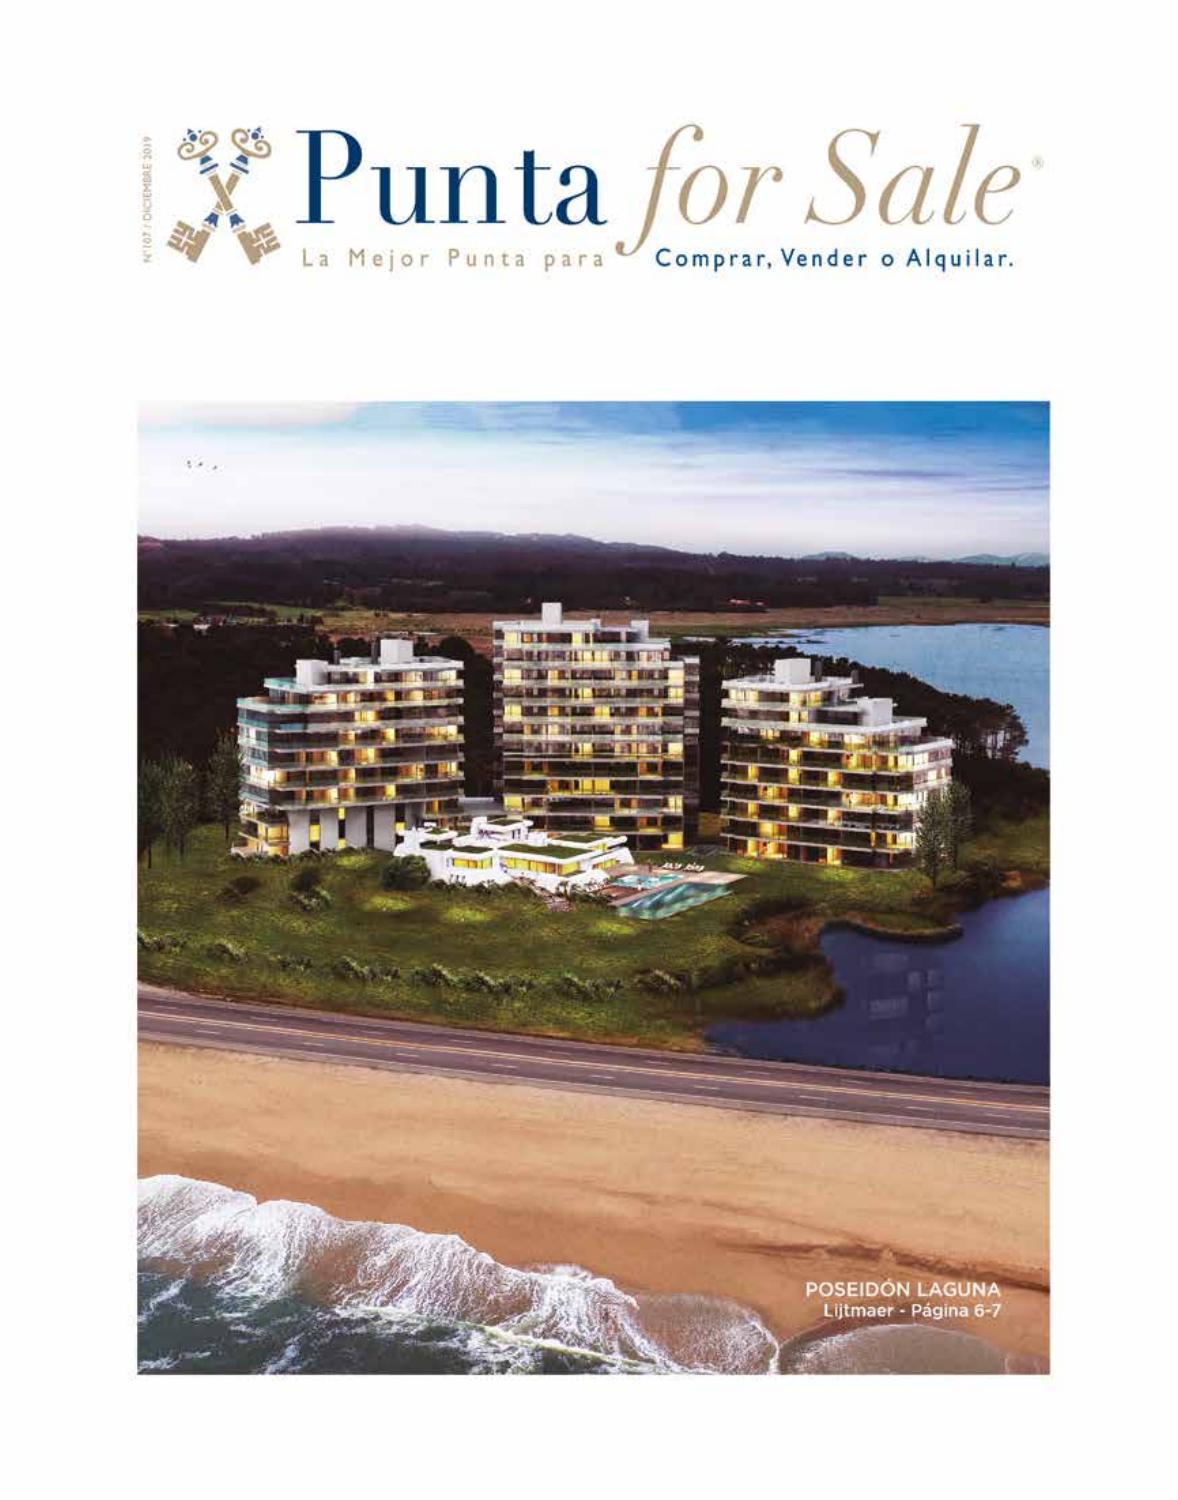 Revista de Real Estate Punta For Sale, edición #107 Diciembre 2019